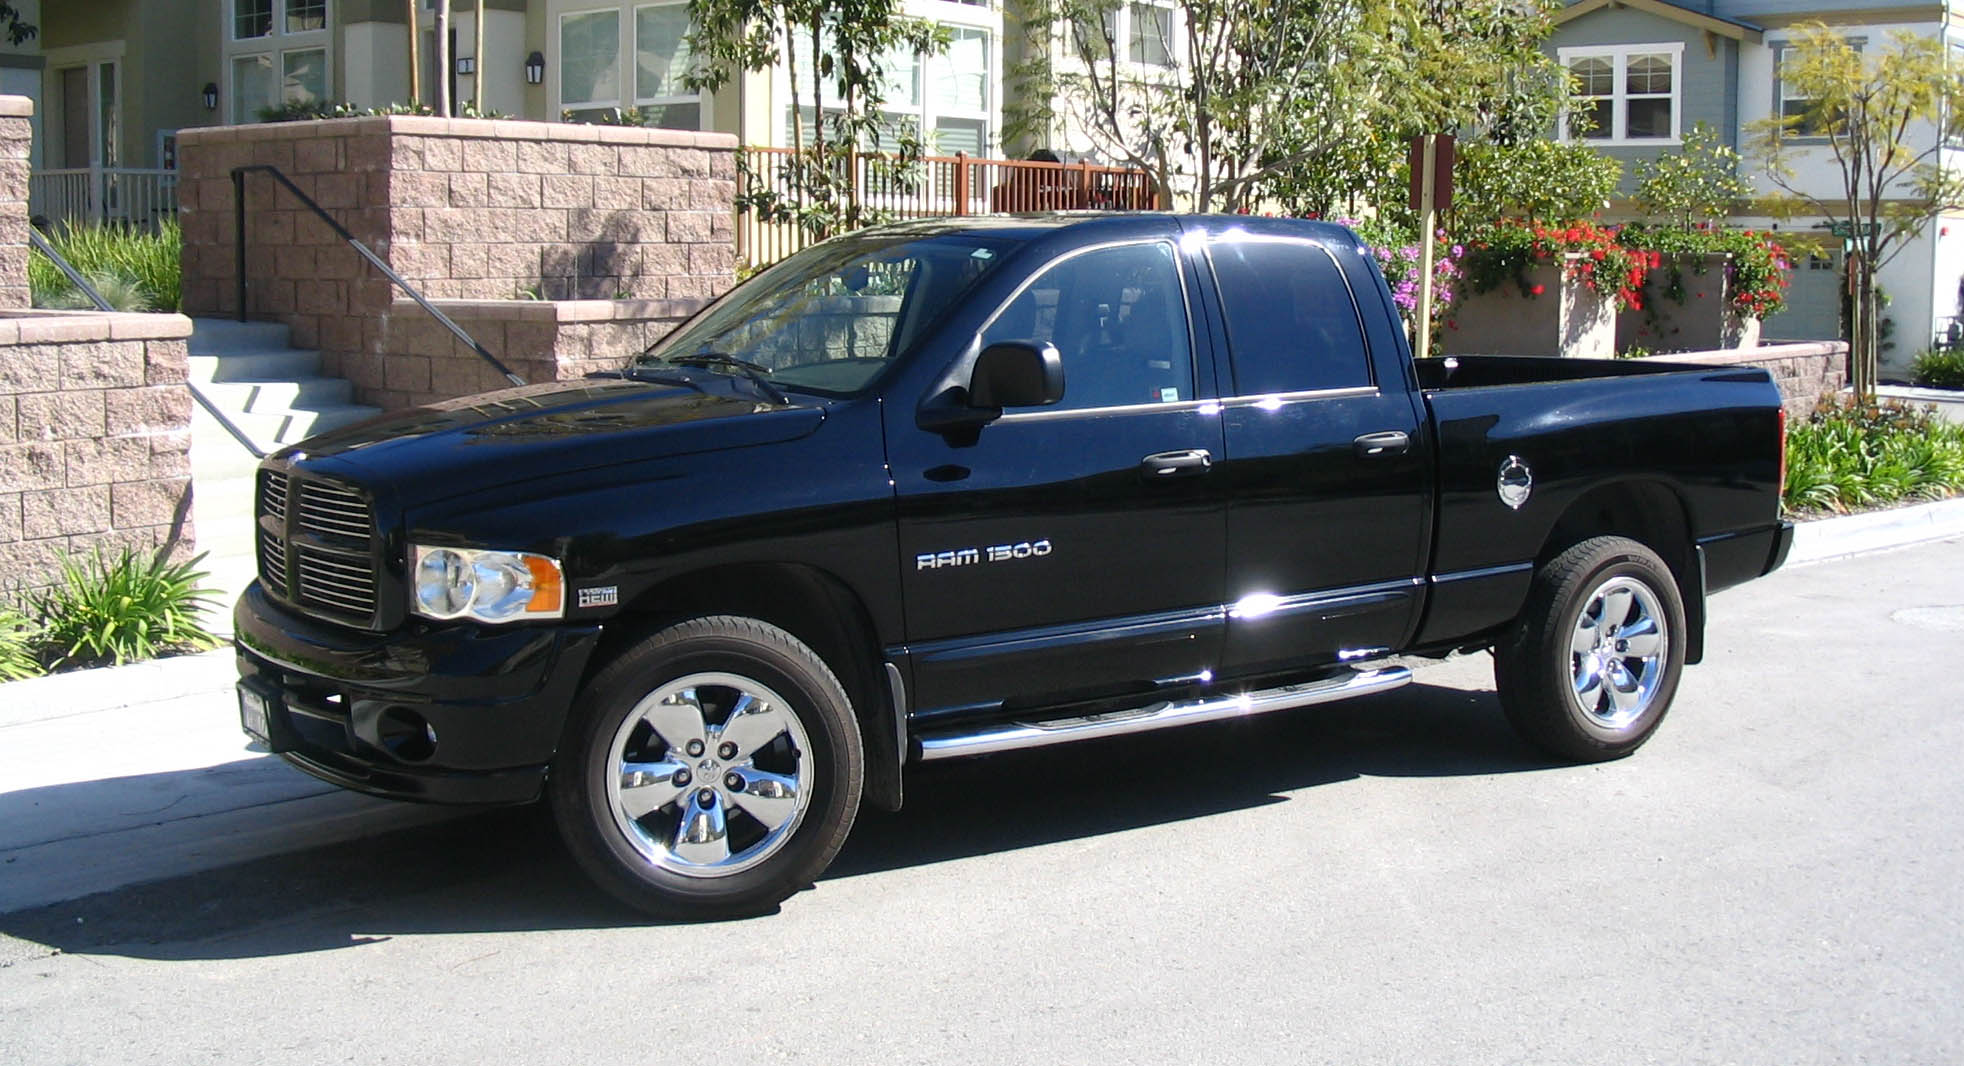 dodge ram 1500 crew cab photos news reviews specs car listings. Black Bedroom Furniture Sets. Home Design Ideas